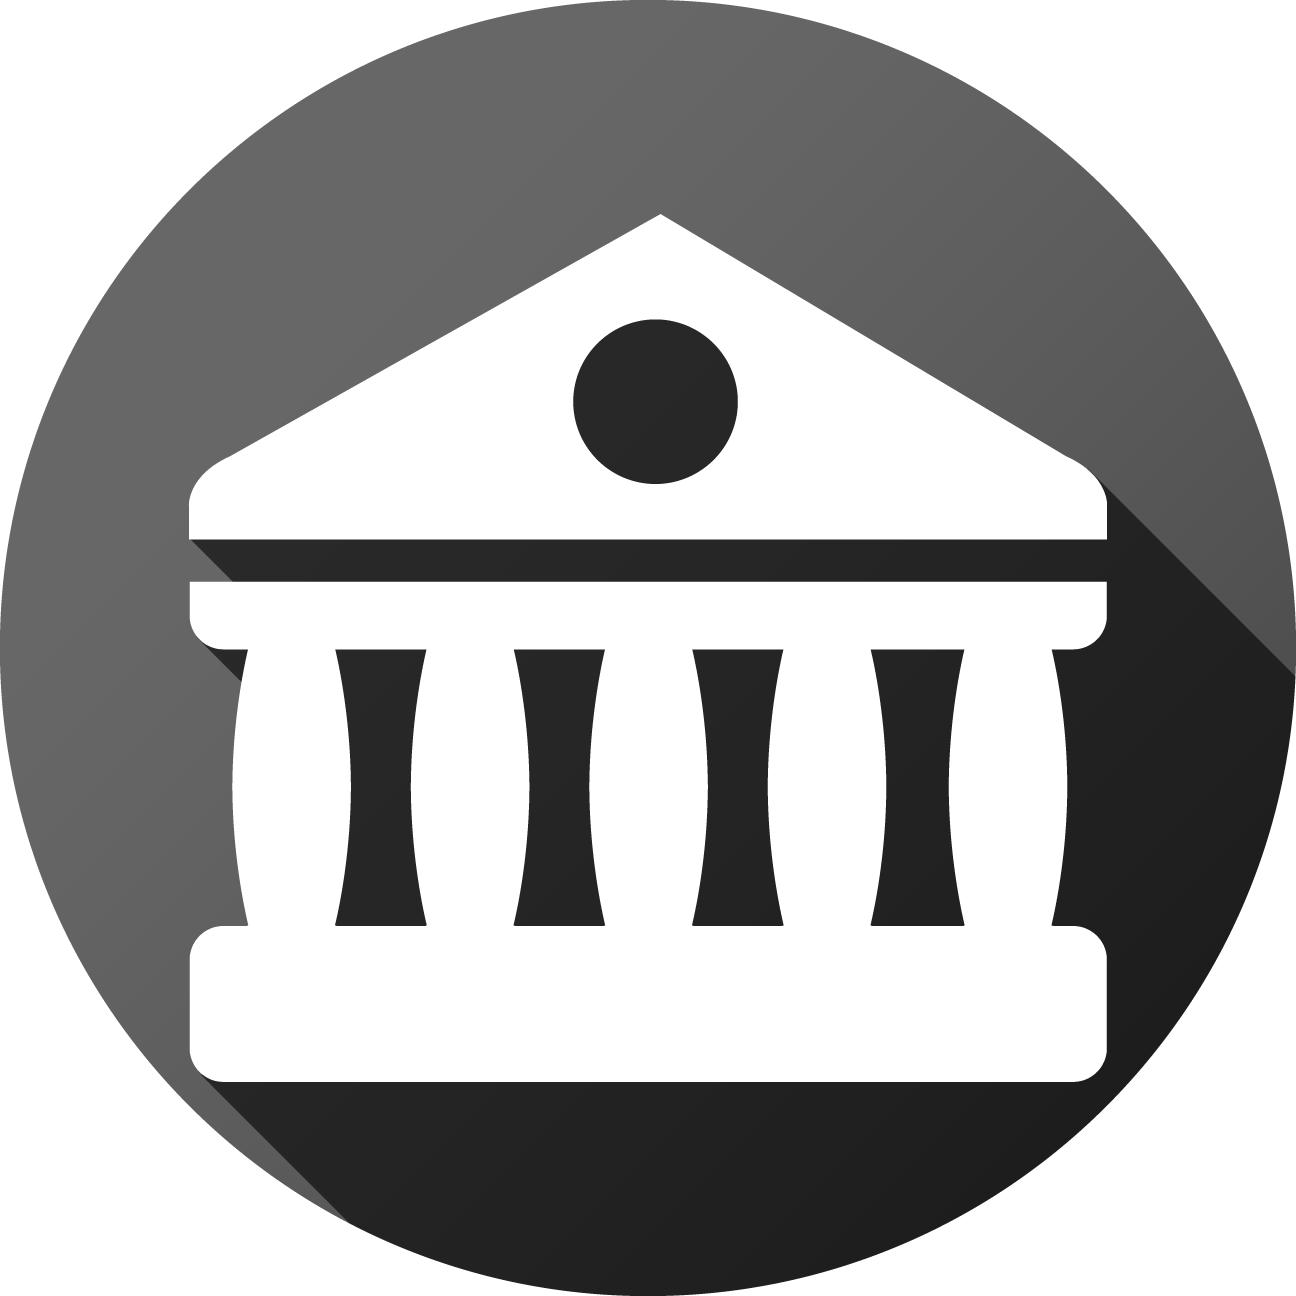 Download Government Free HQ Image HQ PNG Image.